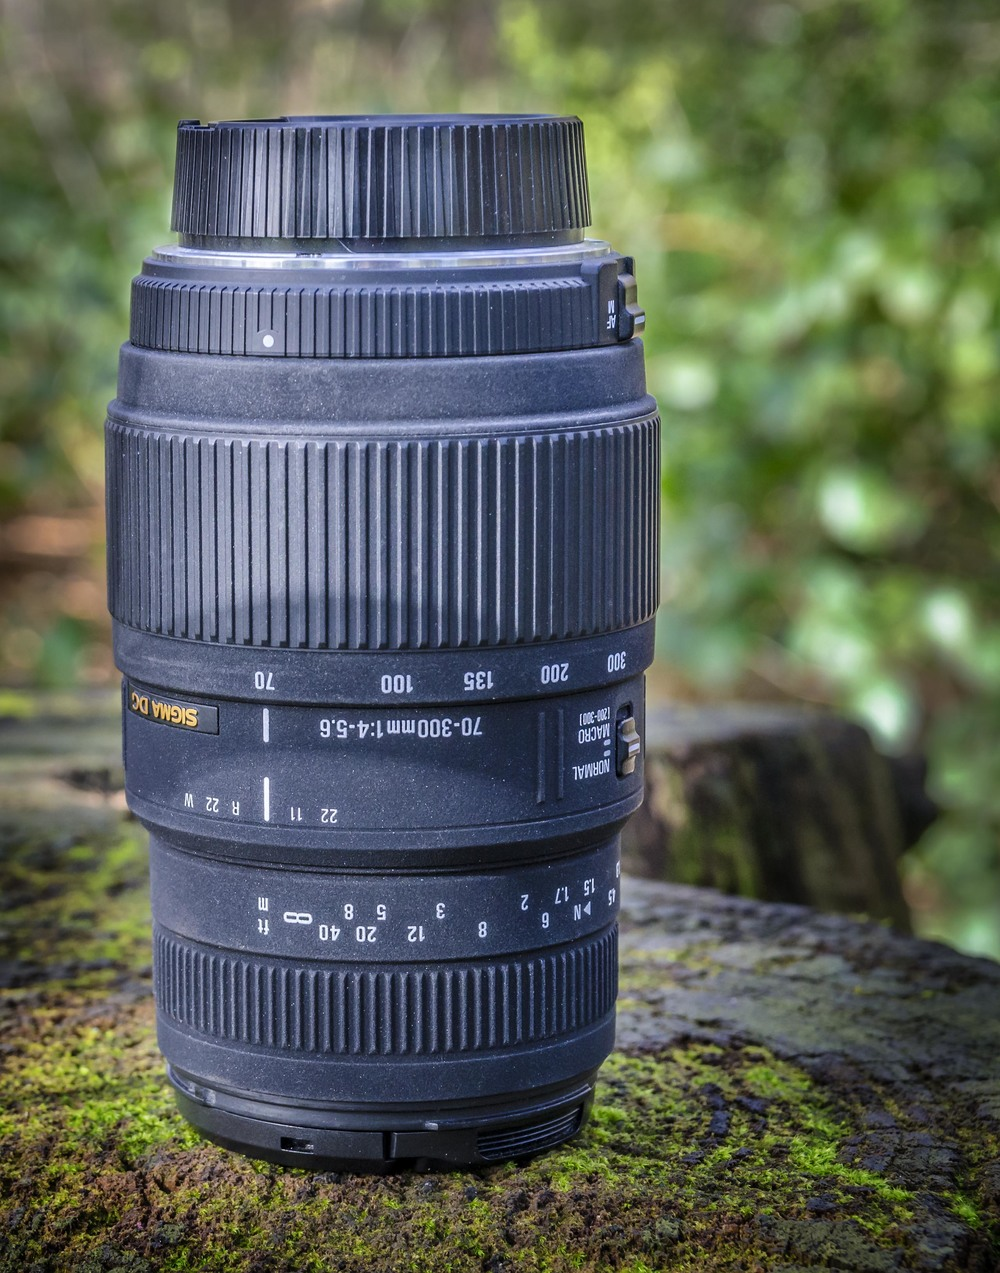 The Sigma 70- 300 mm Macro